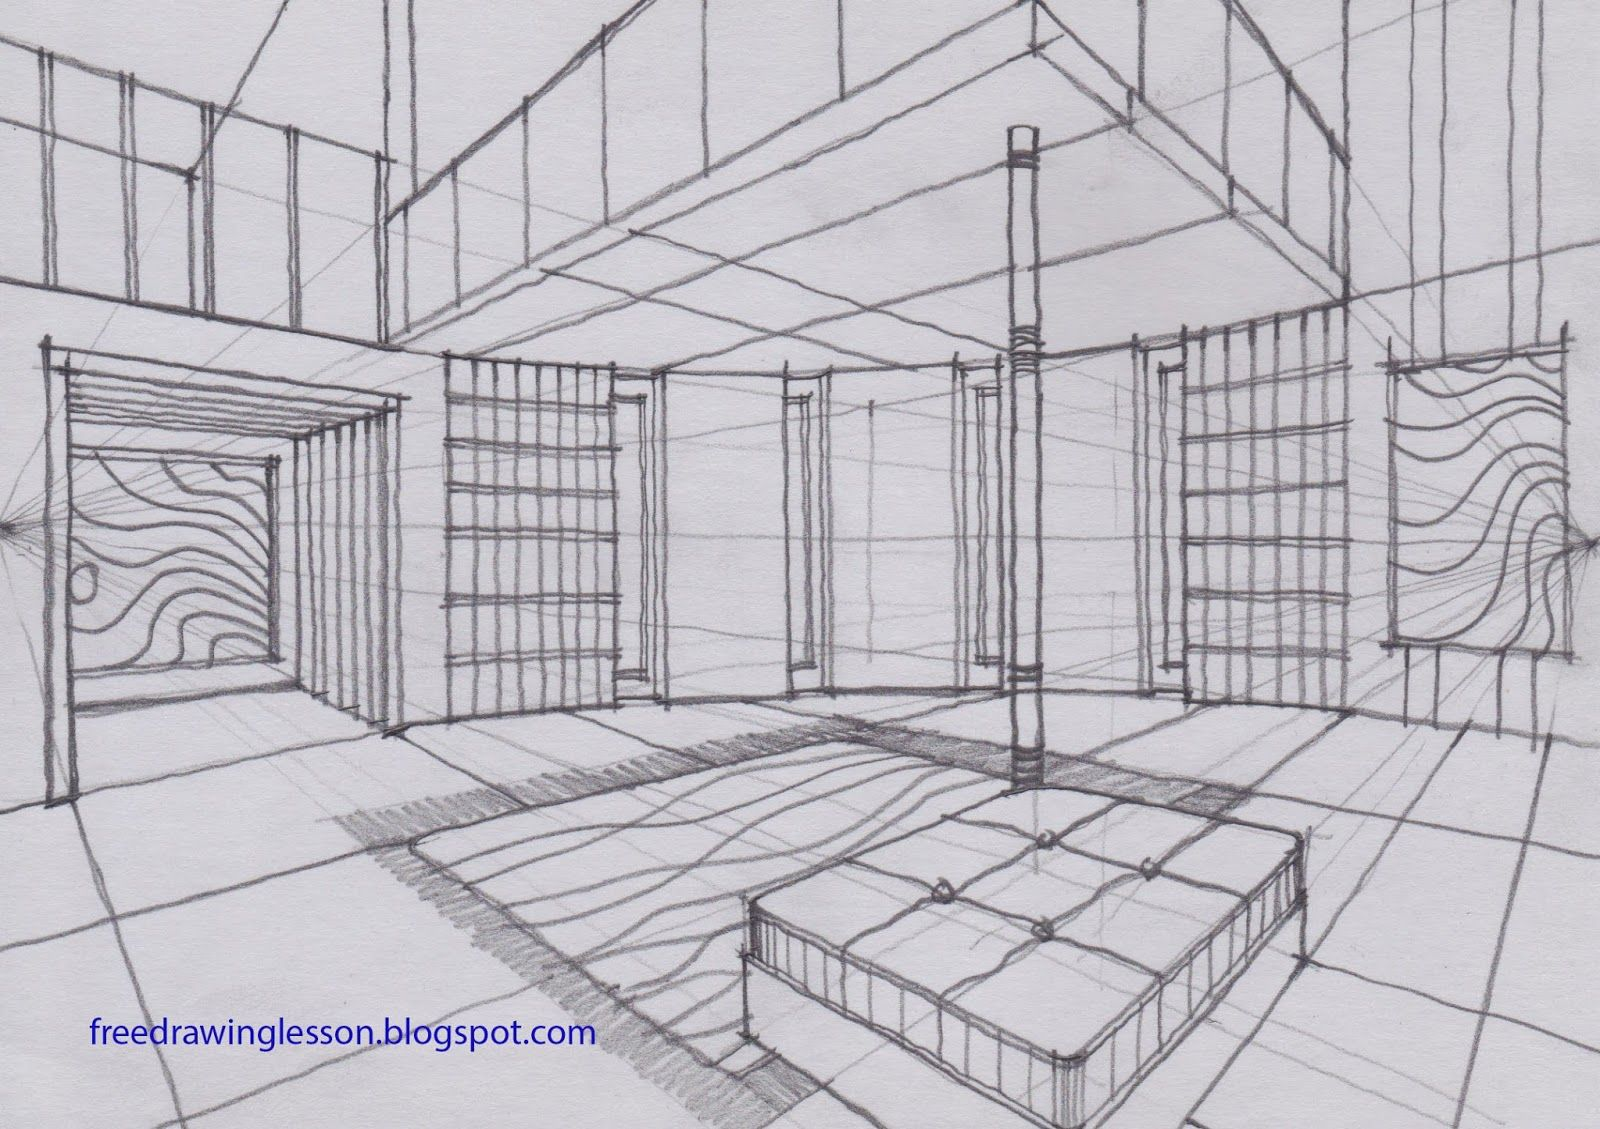 Draw A Room With A Curve Wall In Two Point Perspective Sketch